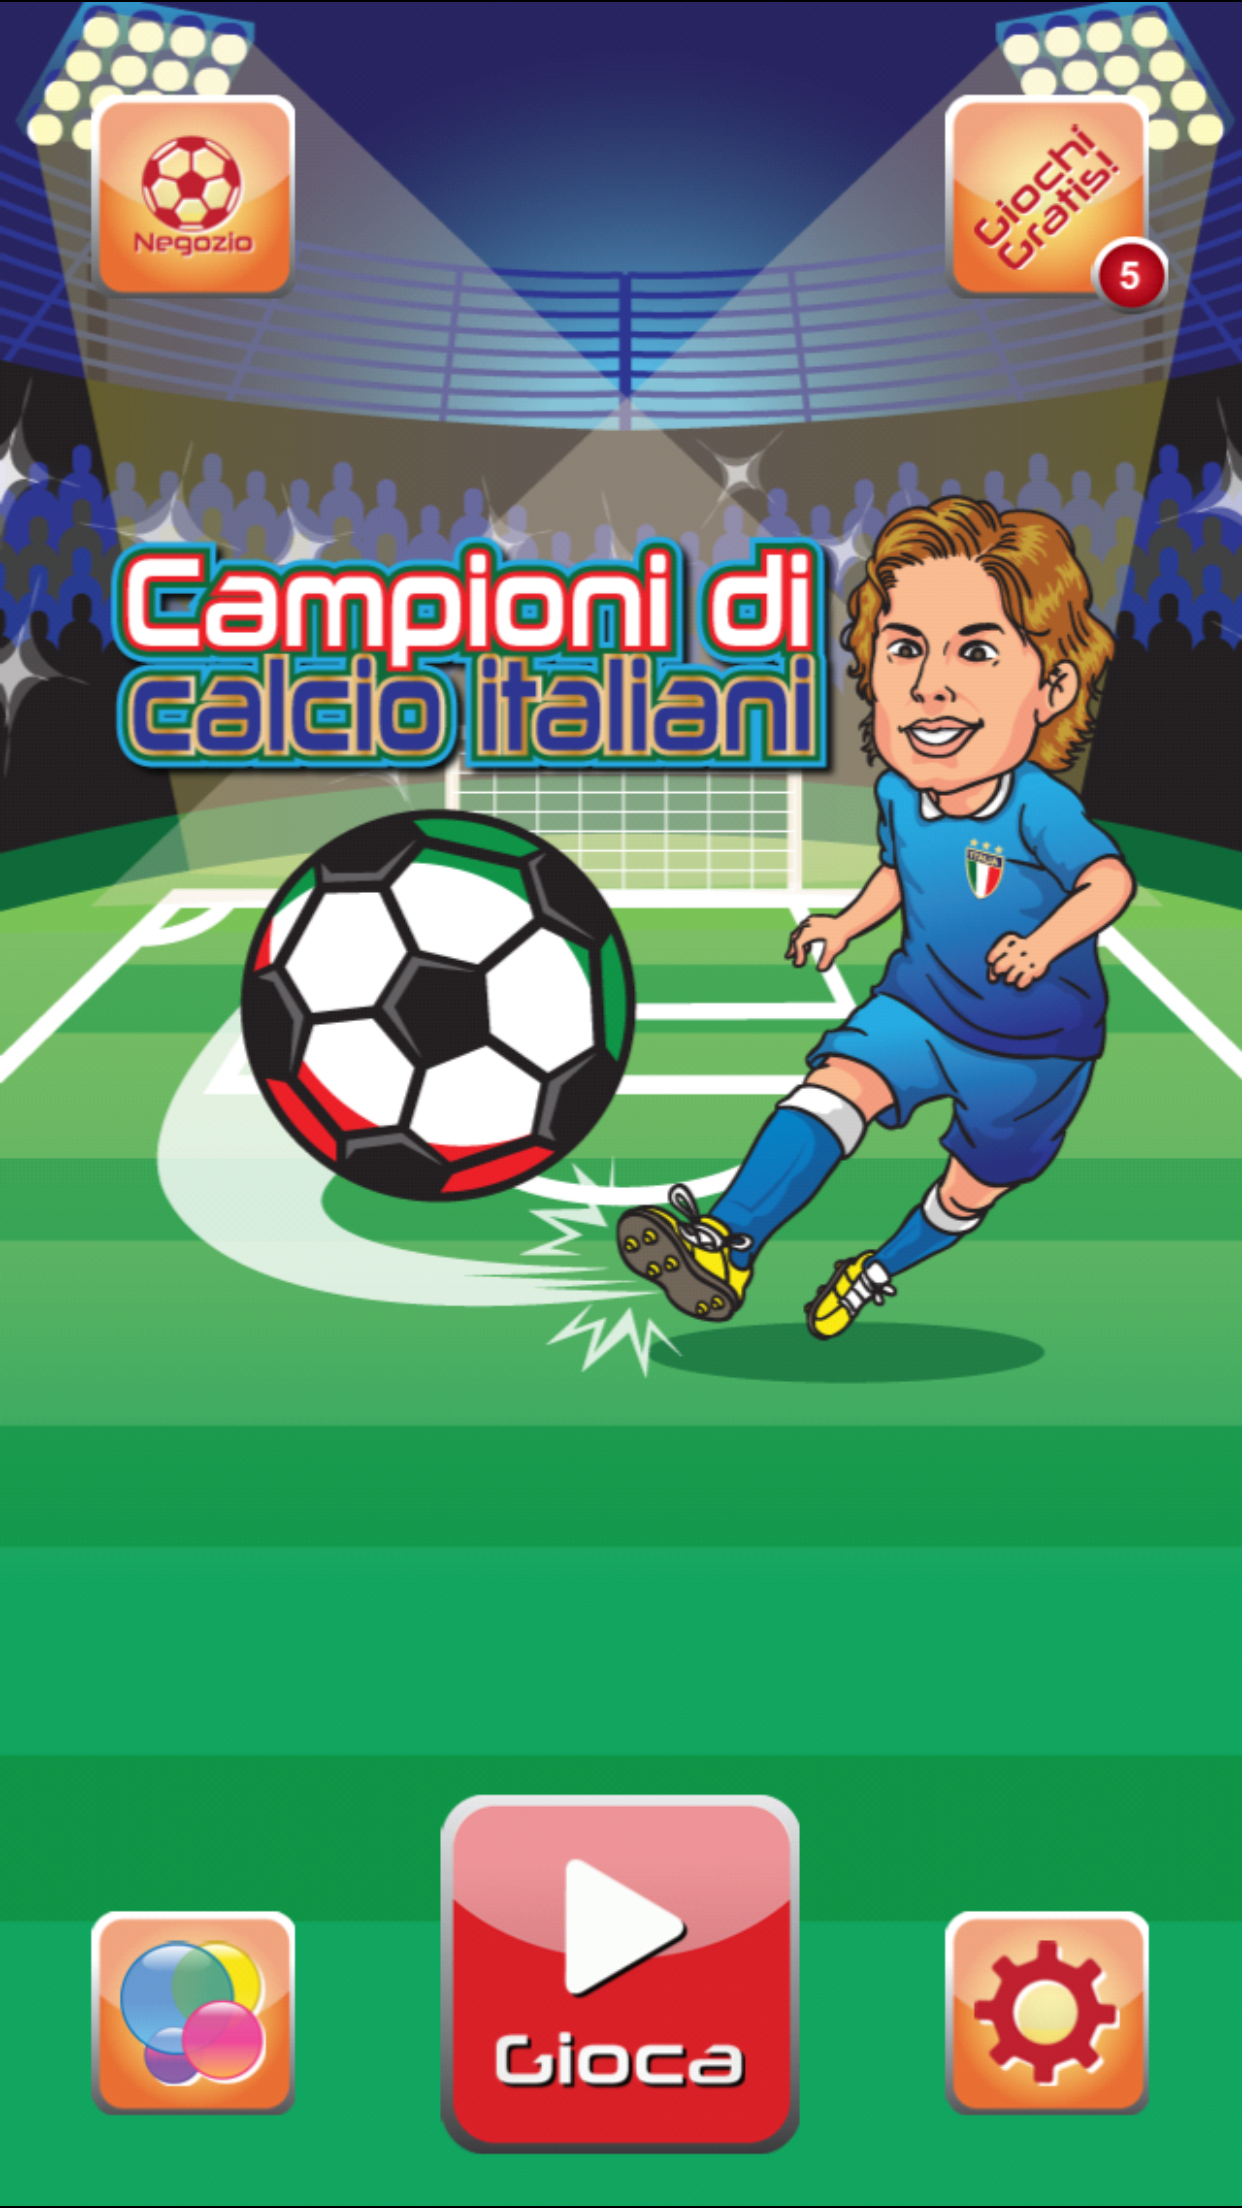 Campioni del mondo di calcio Italiani - Italian world football champions Game Screen